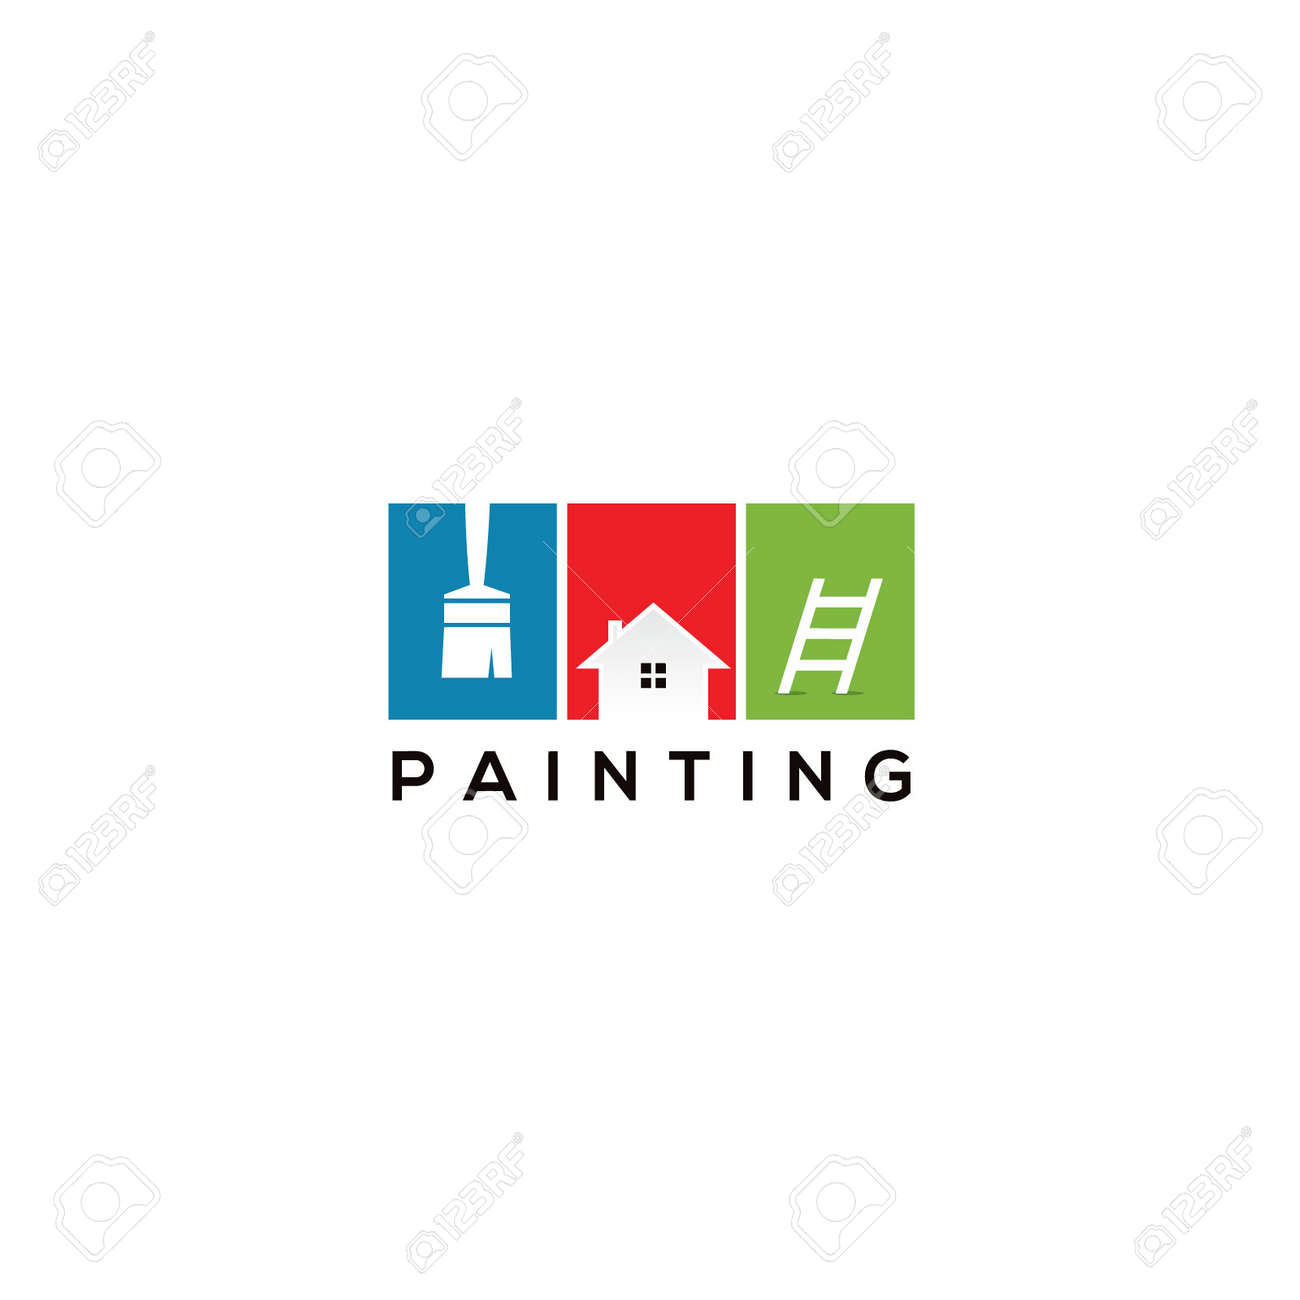 House Paint Logo Design, Home Painting Service Vector Icon ... on create company logo design, construction company shirt design, financial company logo design, trucking company logo design, oil company logo design, water company logo design, construction company labels, construction company web design, safety company logo design, fabrication company logo design, recycled company logo design, solar company logo design, roofing company logo design, construction logos examples, remodeling company logo design, auto company logo design, popular company logo design, pharmaceutical company logo design, construction logo ideas, packaging company logo design,